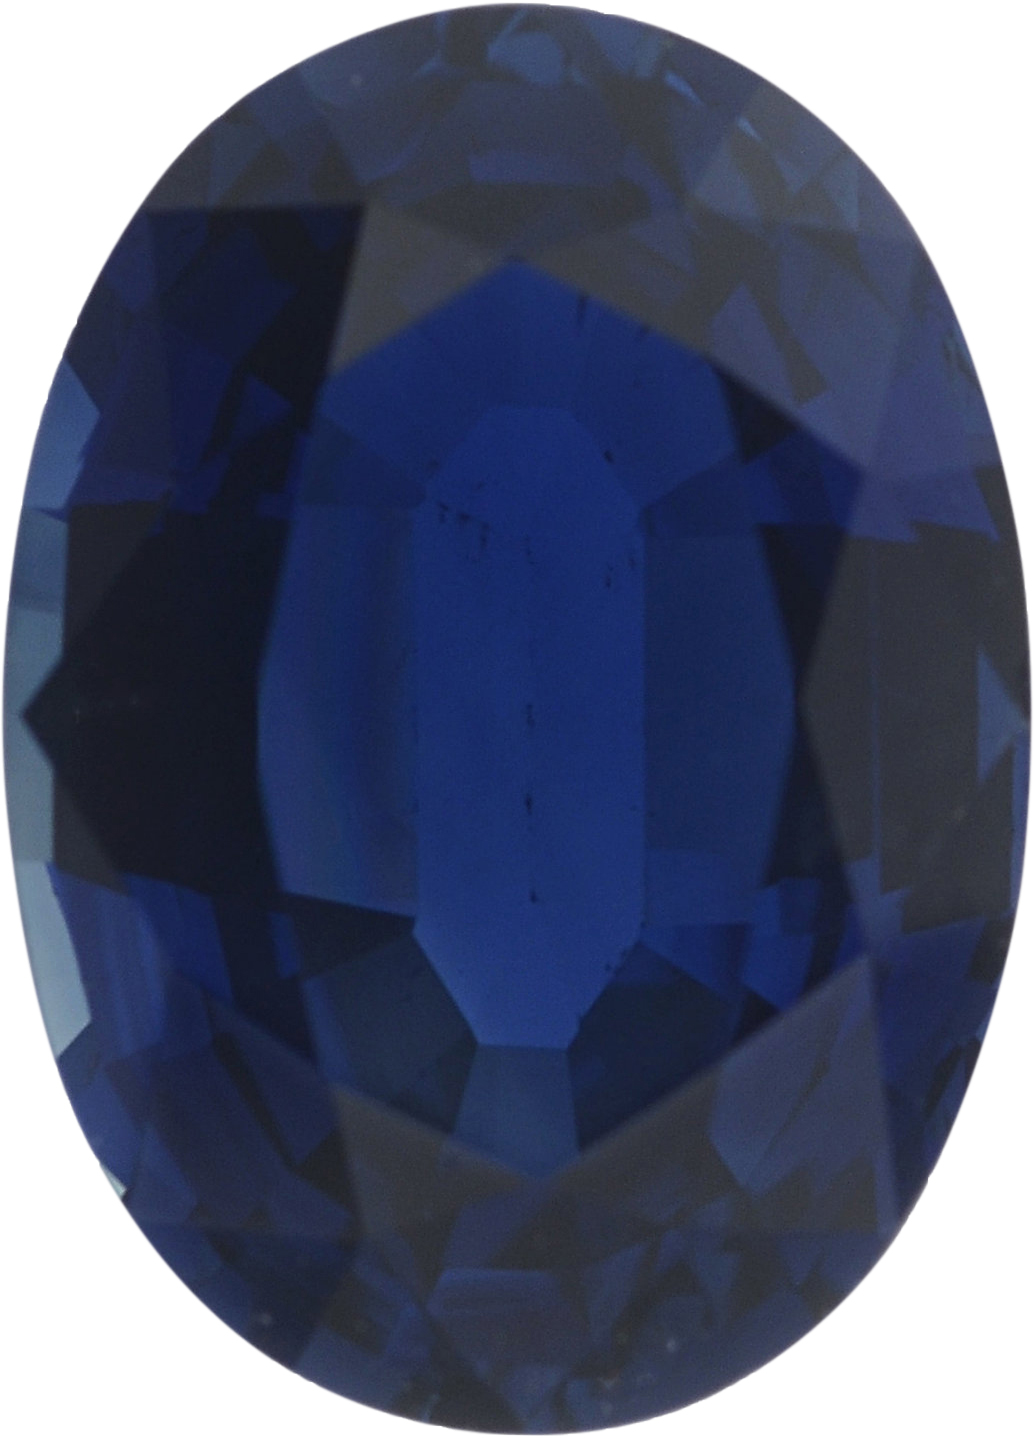 1.02 carats Blue Loose Sapphire Gemstone in Oval Cut, 7.12 x 5.13 mm